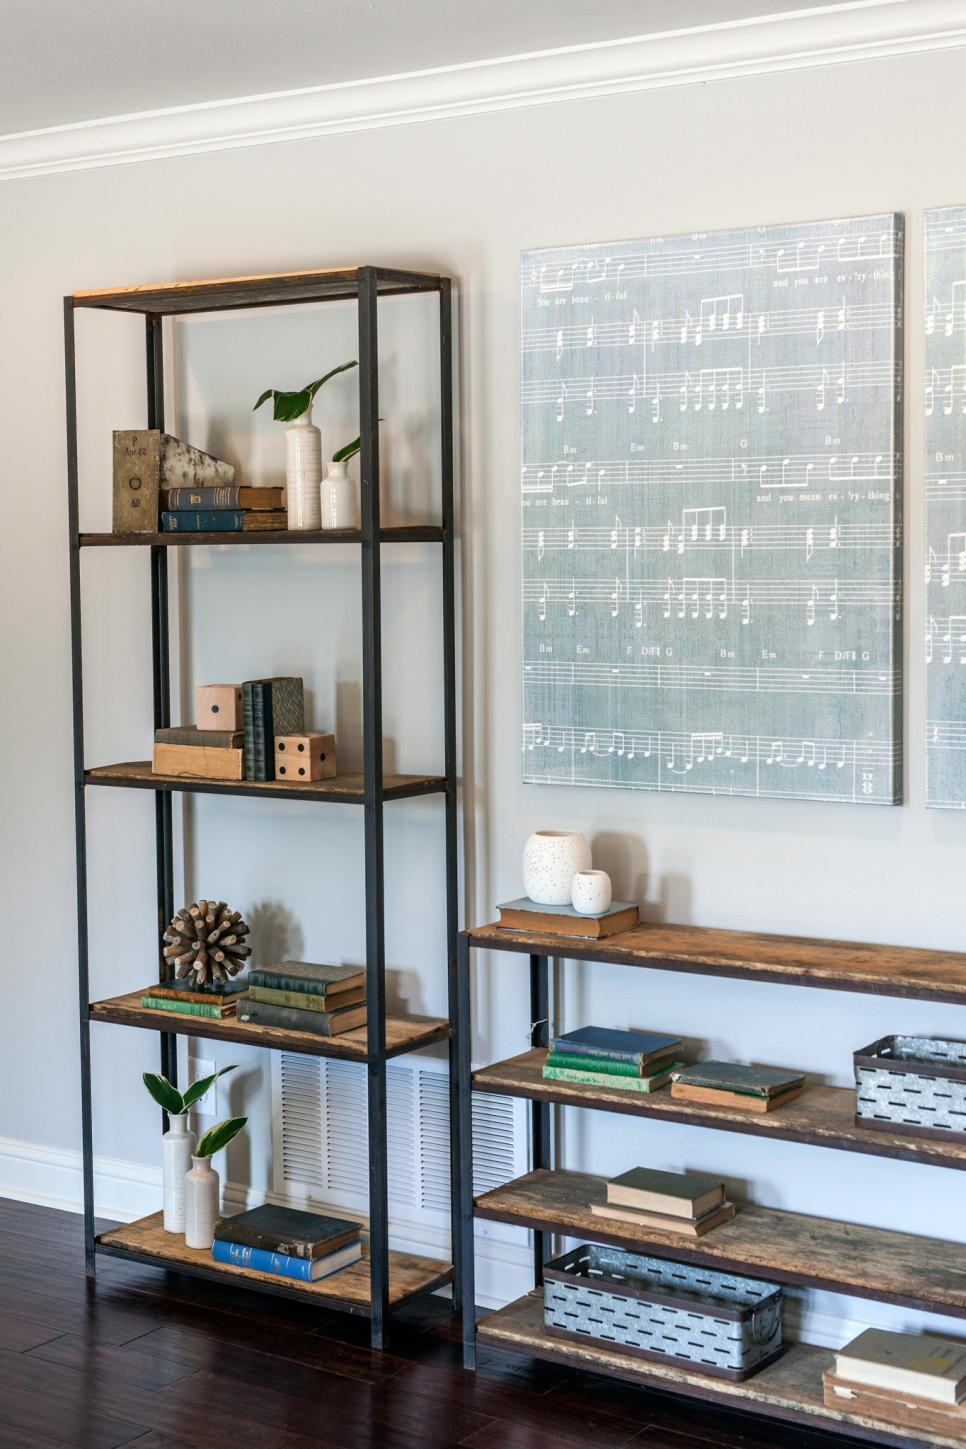 Home Design Software Used On Fixer Upper Could This Be The Next House On Season 4 Of Fixer Upper Rachel Shop The House Fixer Upper U0027s Baby Blue House The Weathered Fox How